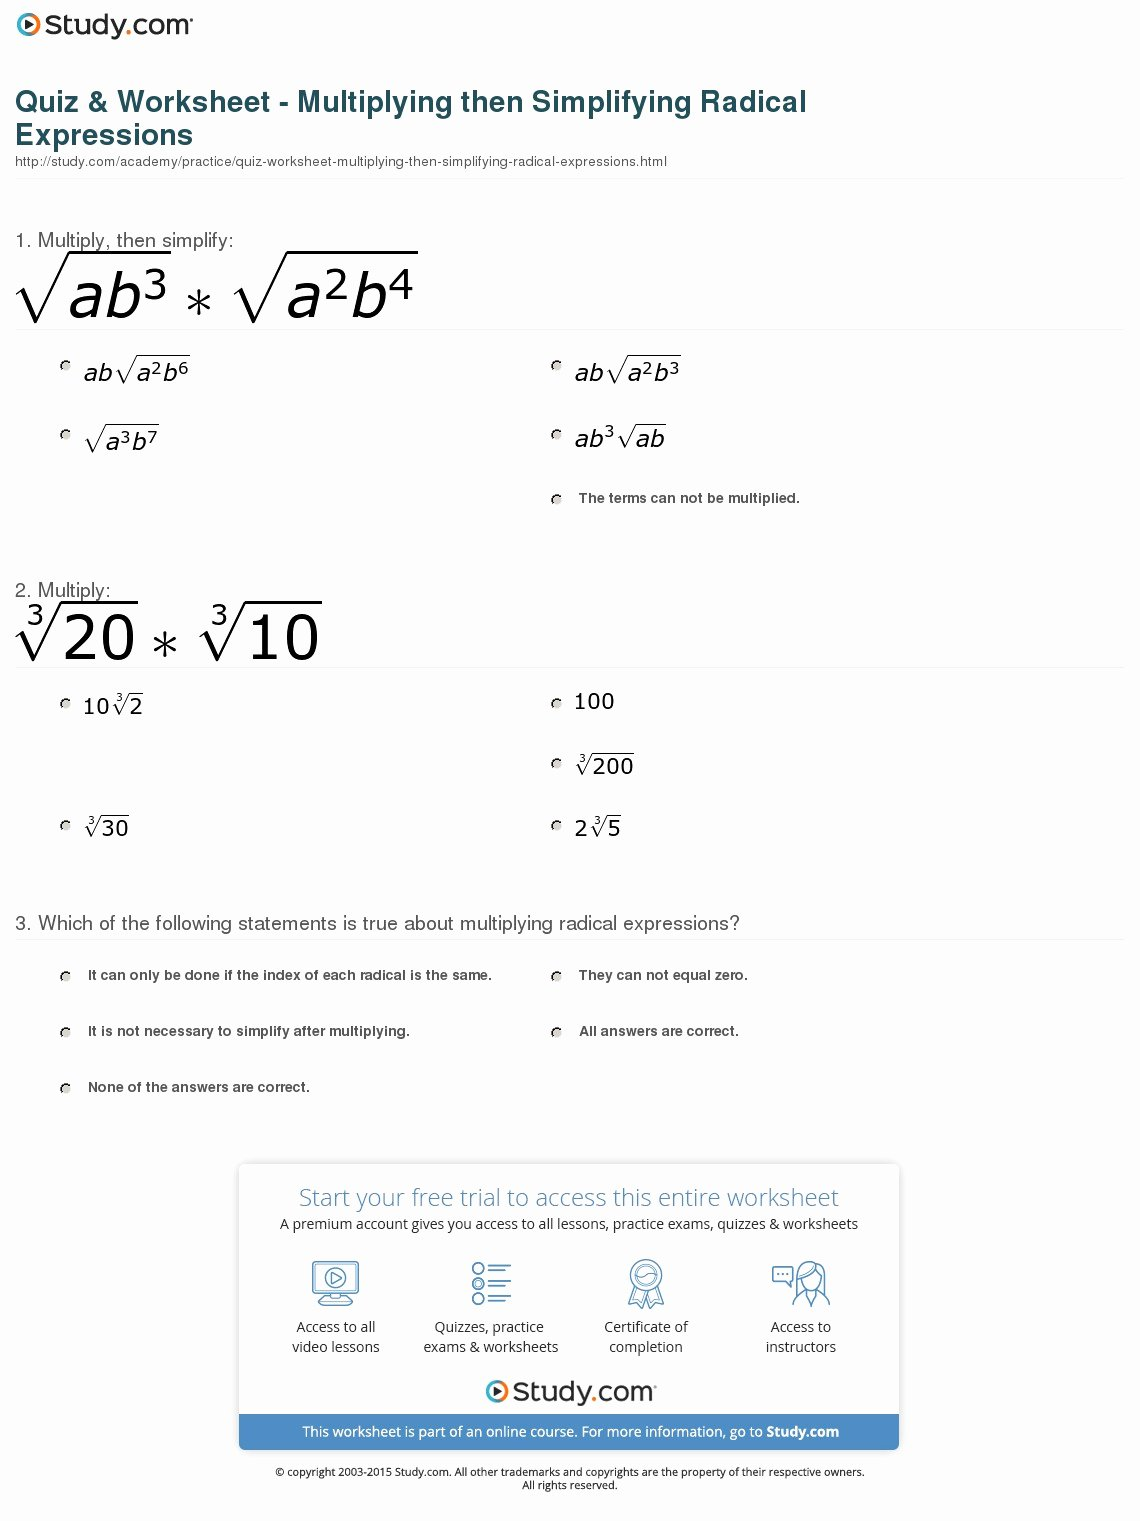 Simplifying Radical Expressions Worksheet Awesome Quiz & Worksheet Multiplying then Simplifying Radical